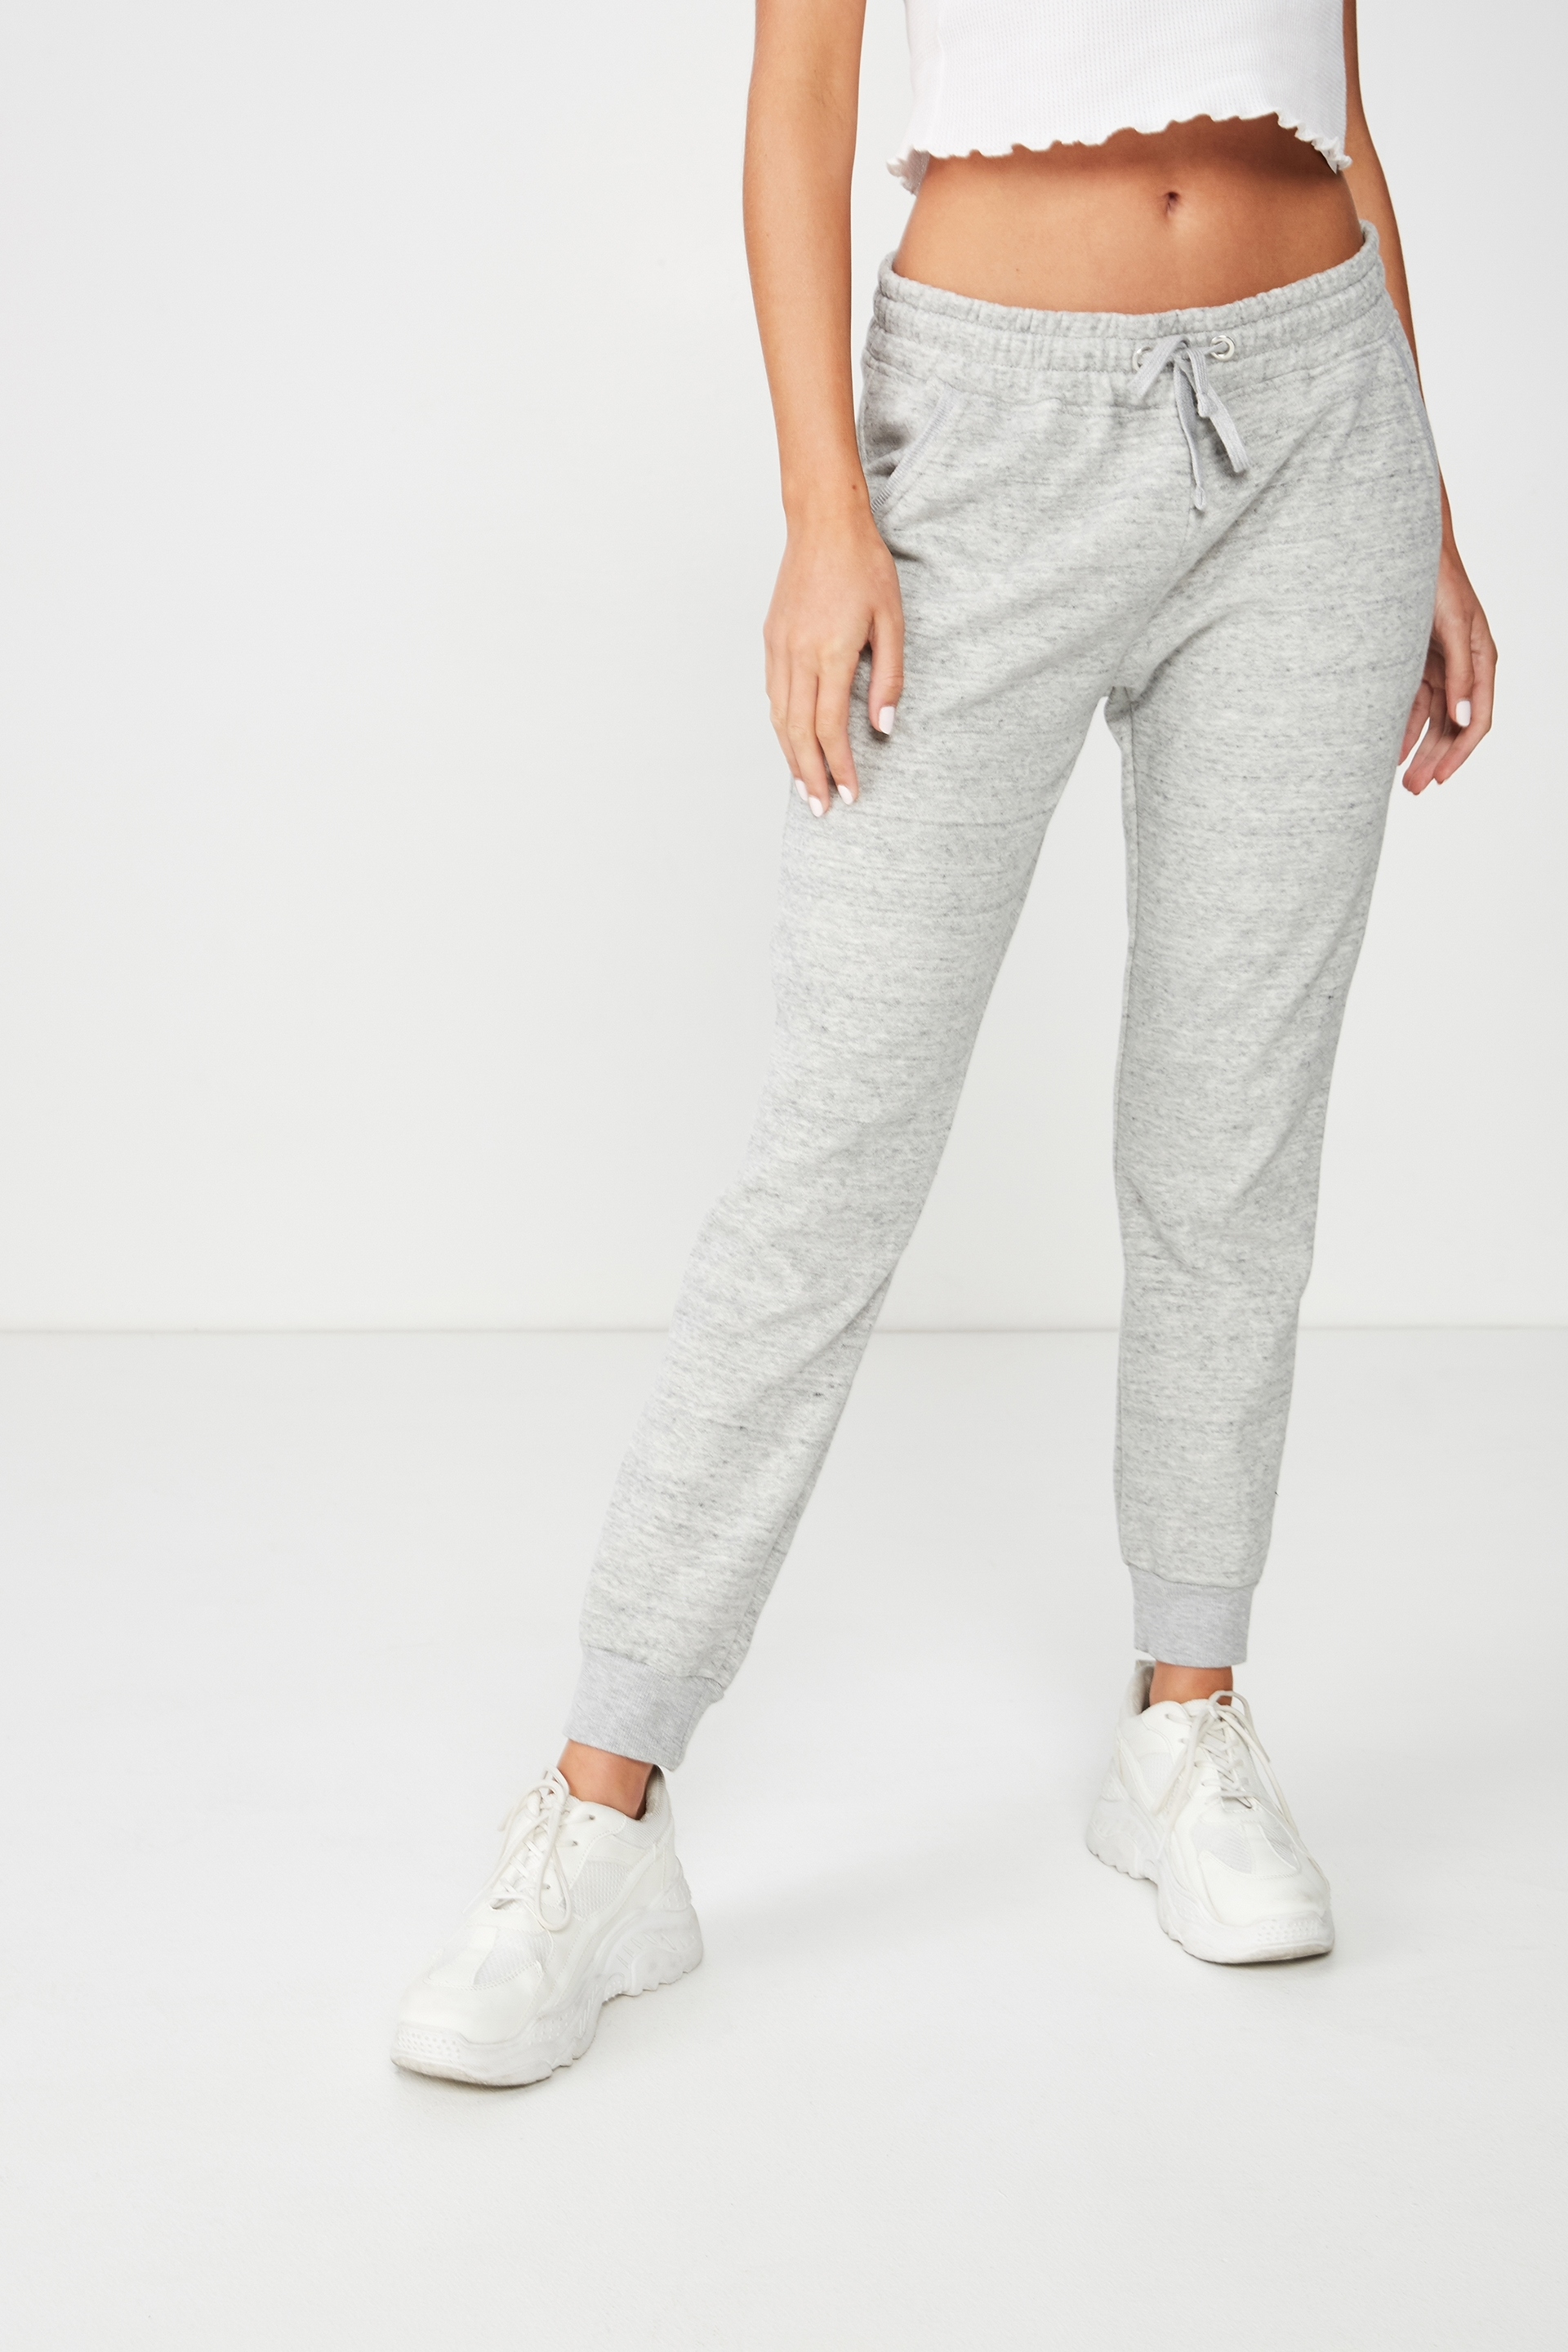 Cotton On Women - Adele Trackpant - Grey marle